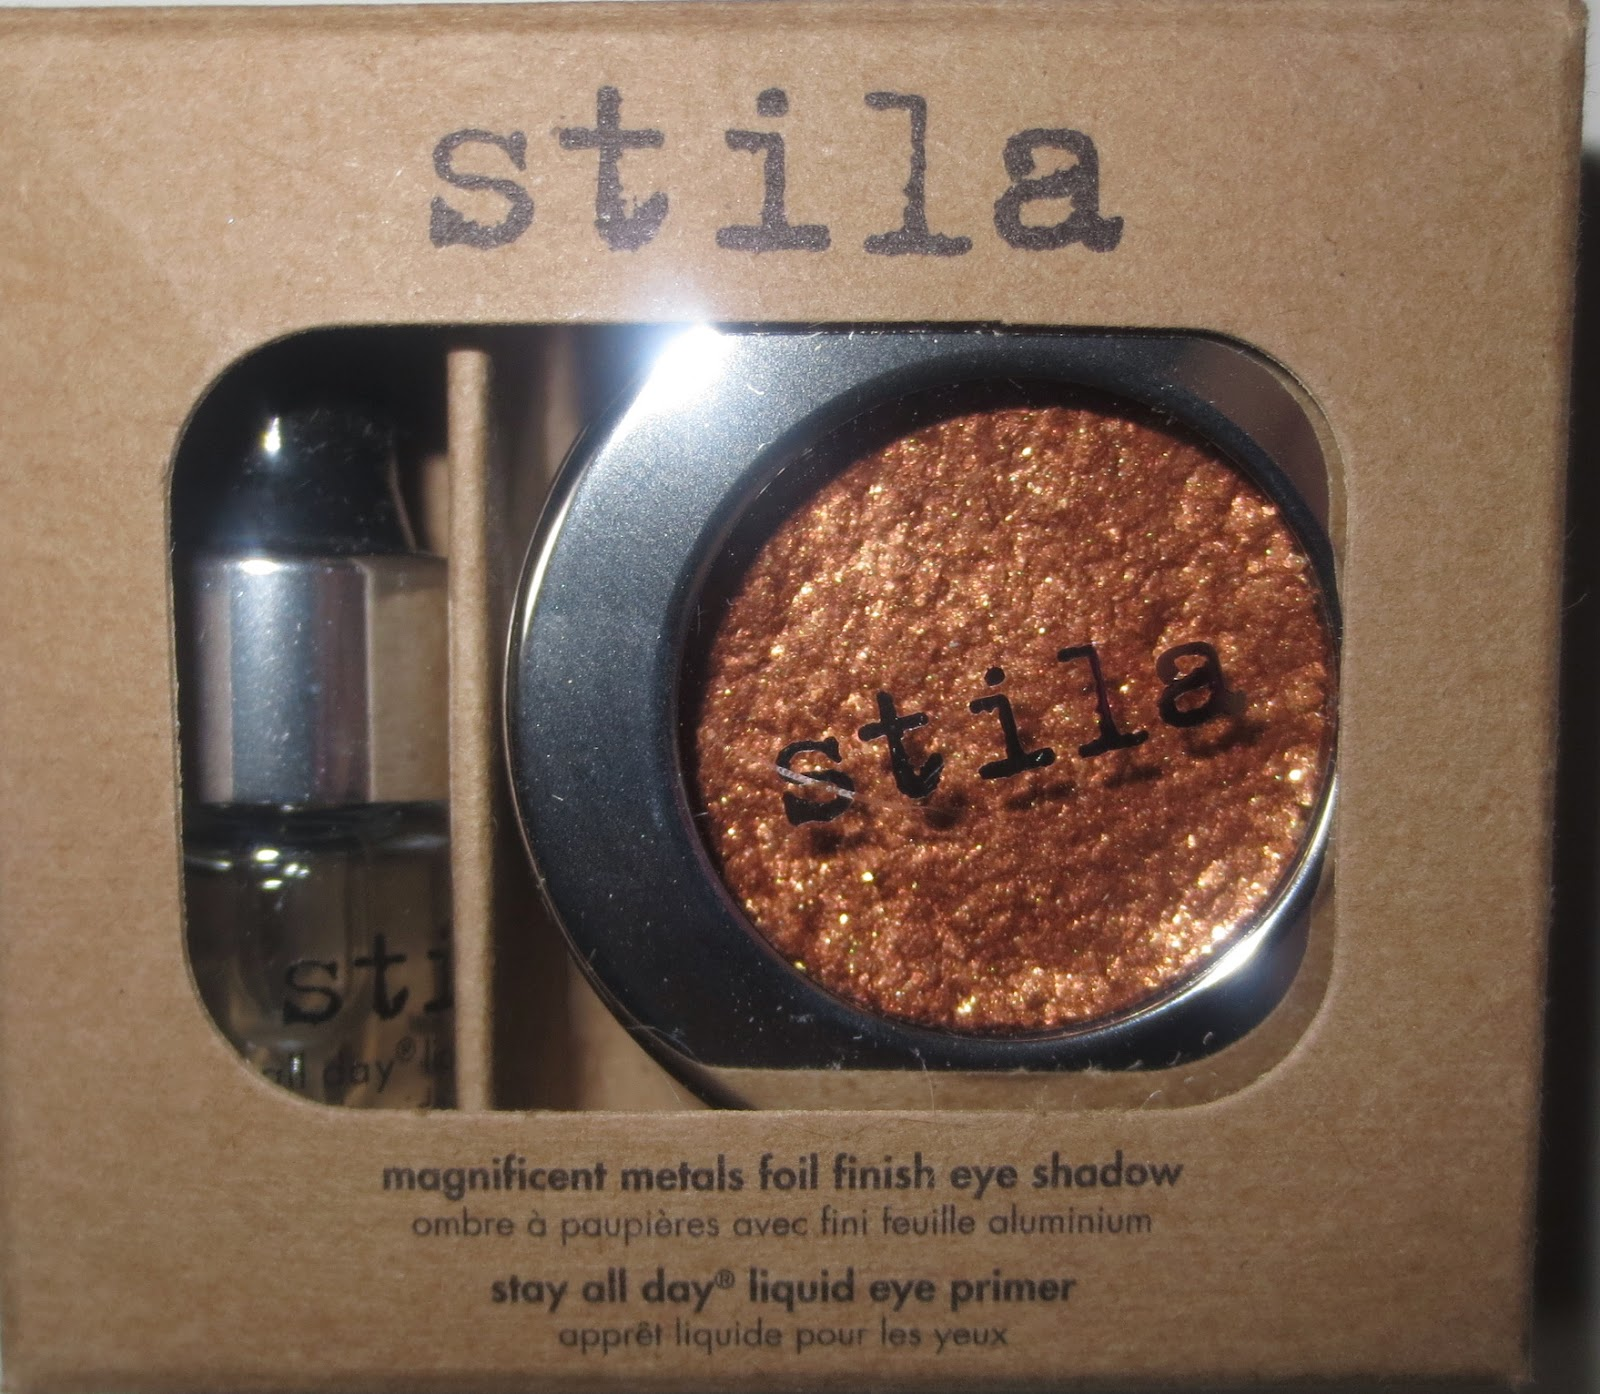 Stila Magnificent Metals Foil Finish Eye Shadow - Comex Copper